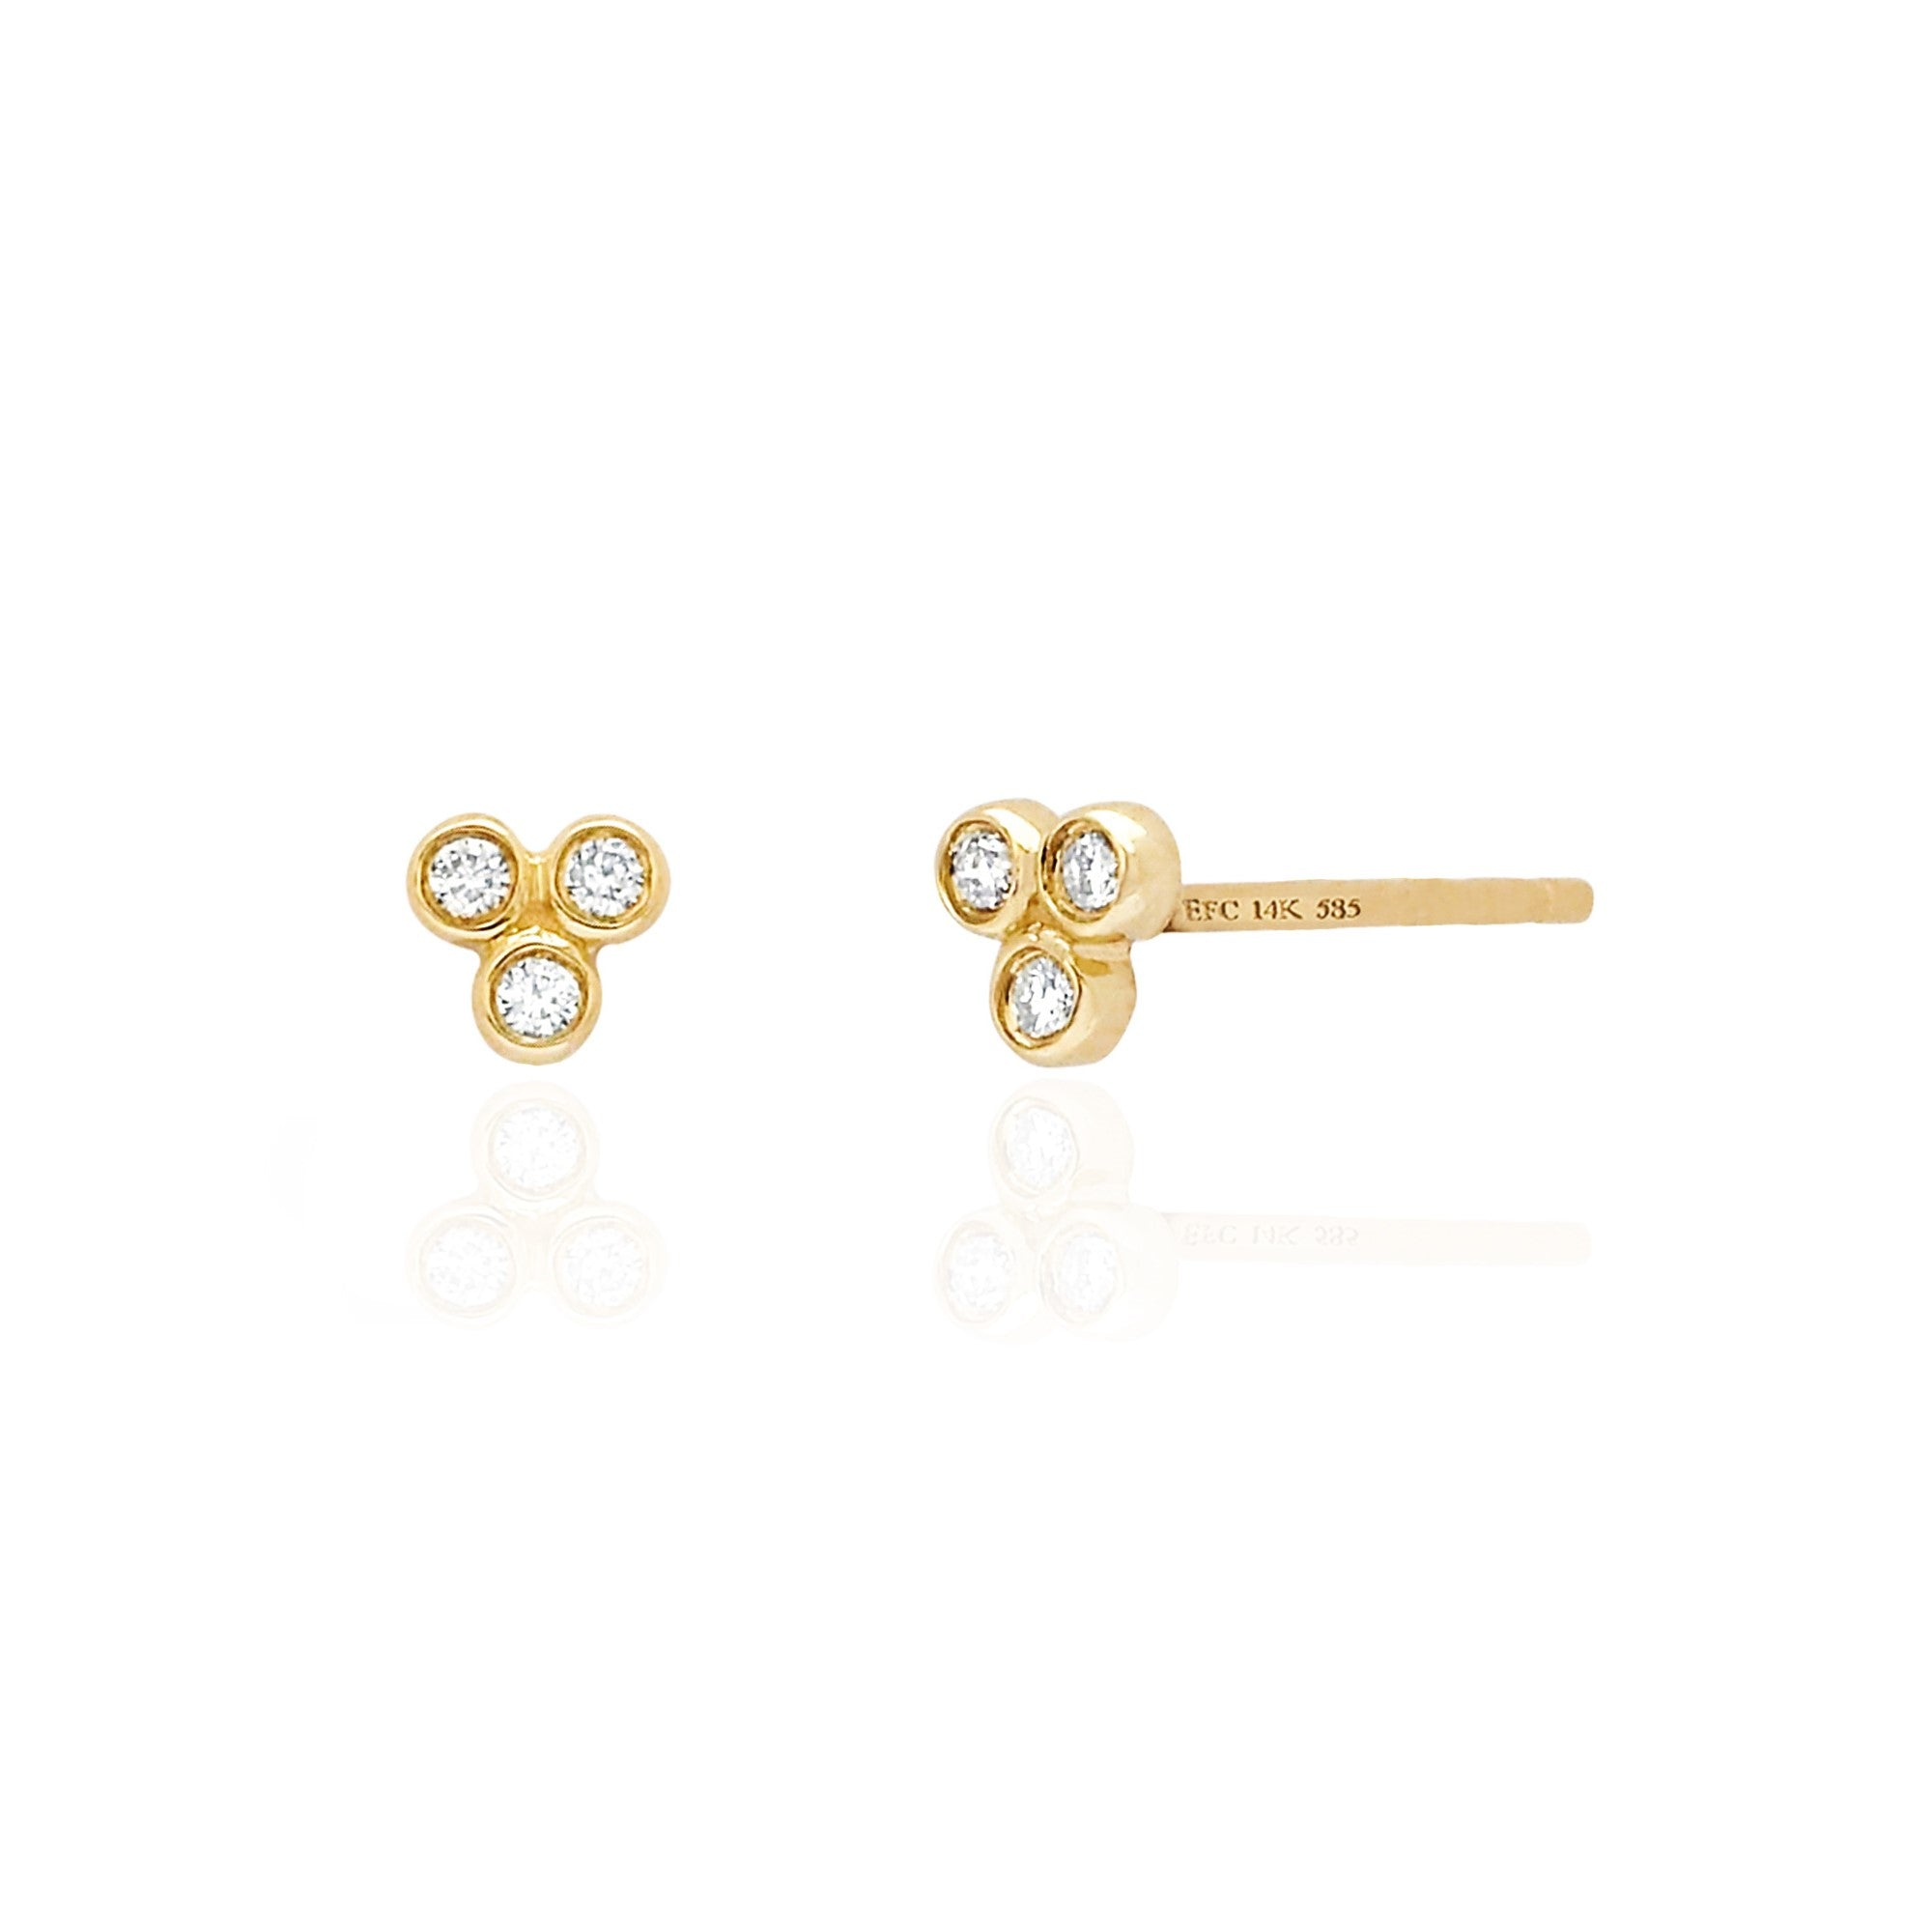 3 Bezel Diamond Stud Earrings